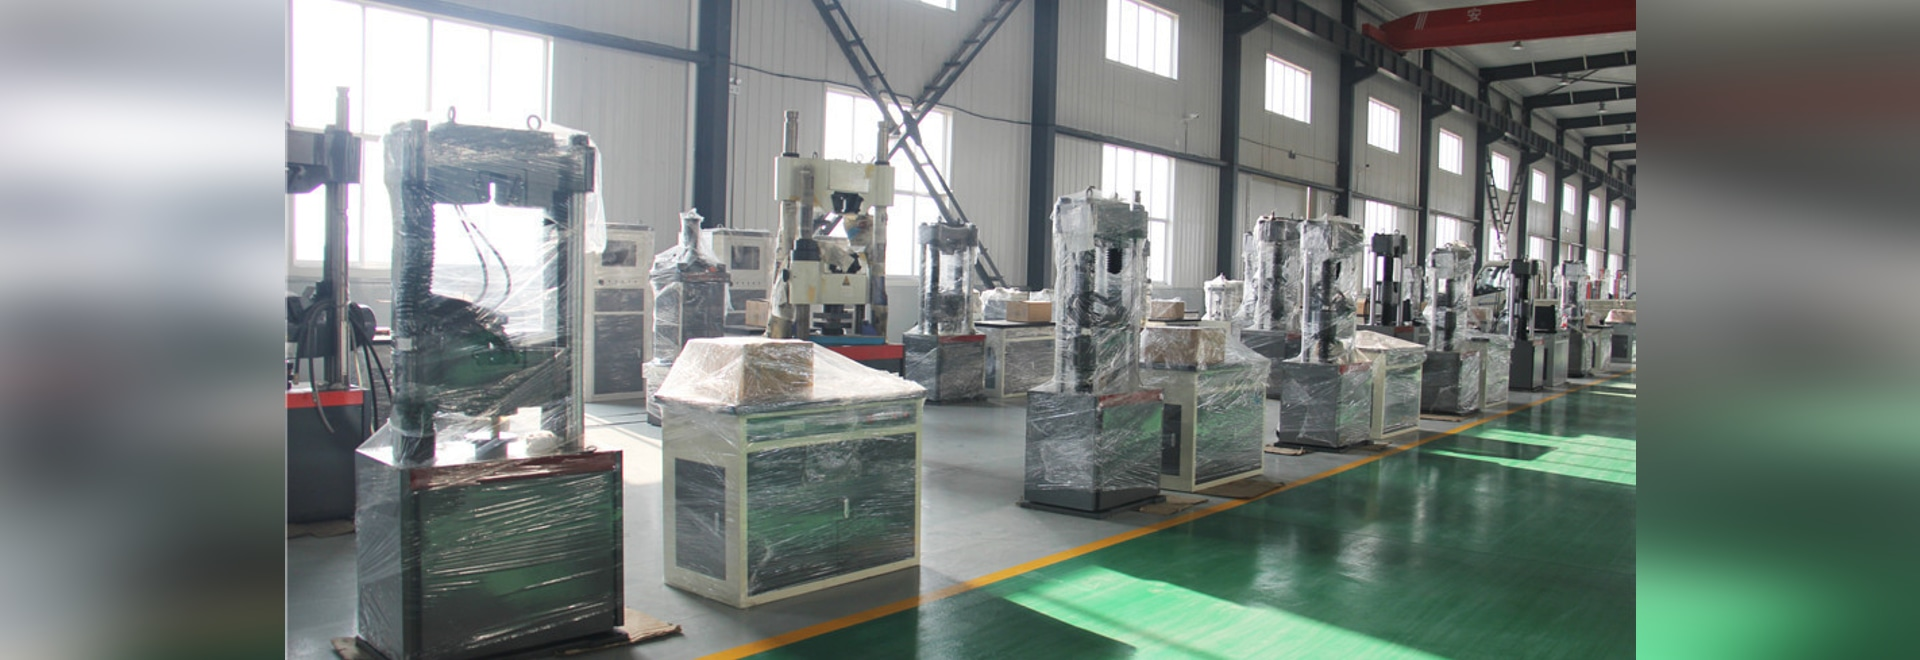 Permeable paving brick/concrete tile bending performance testing machine meeting the standard requirements